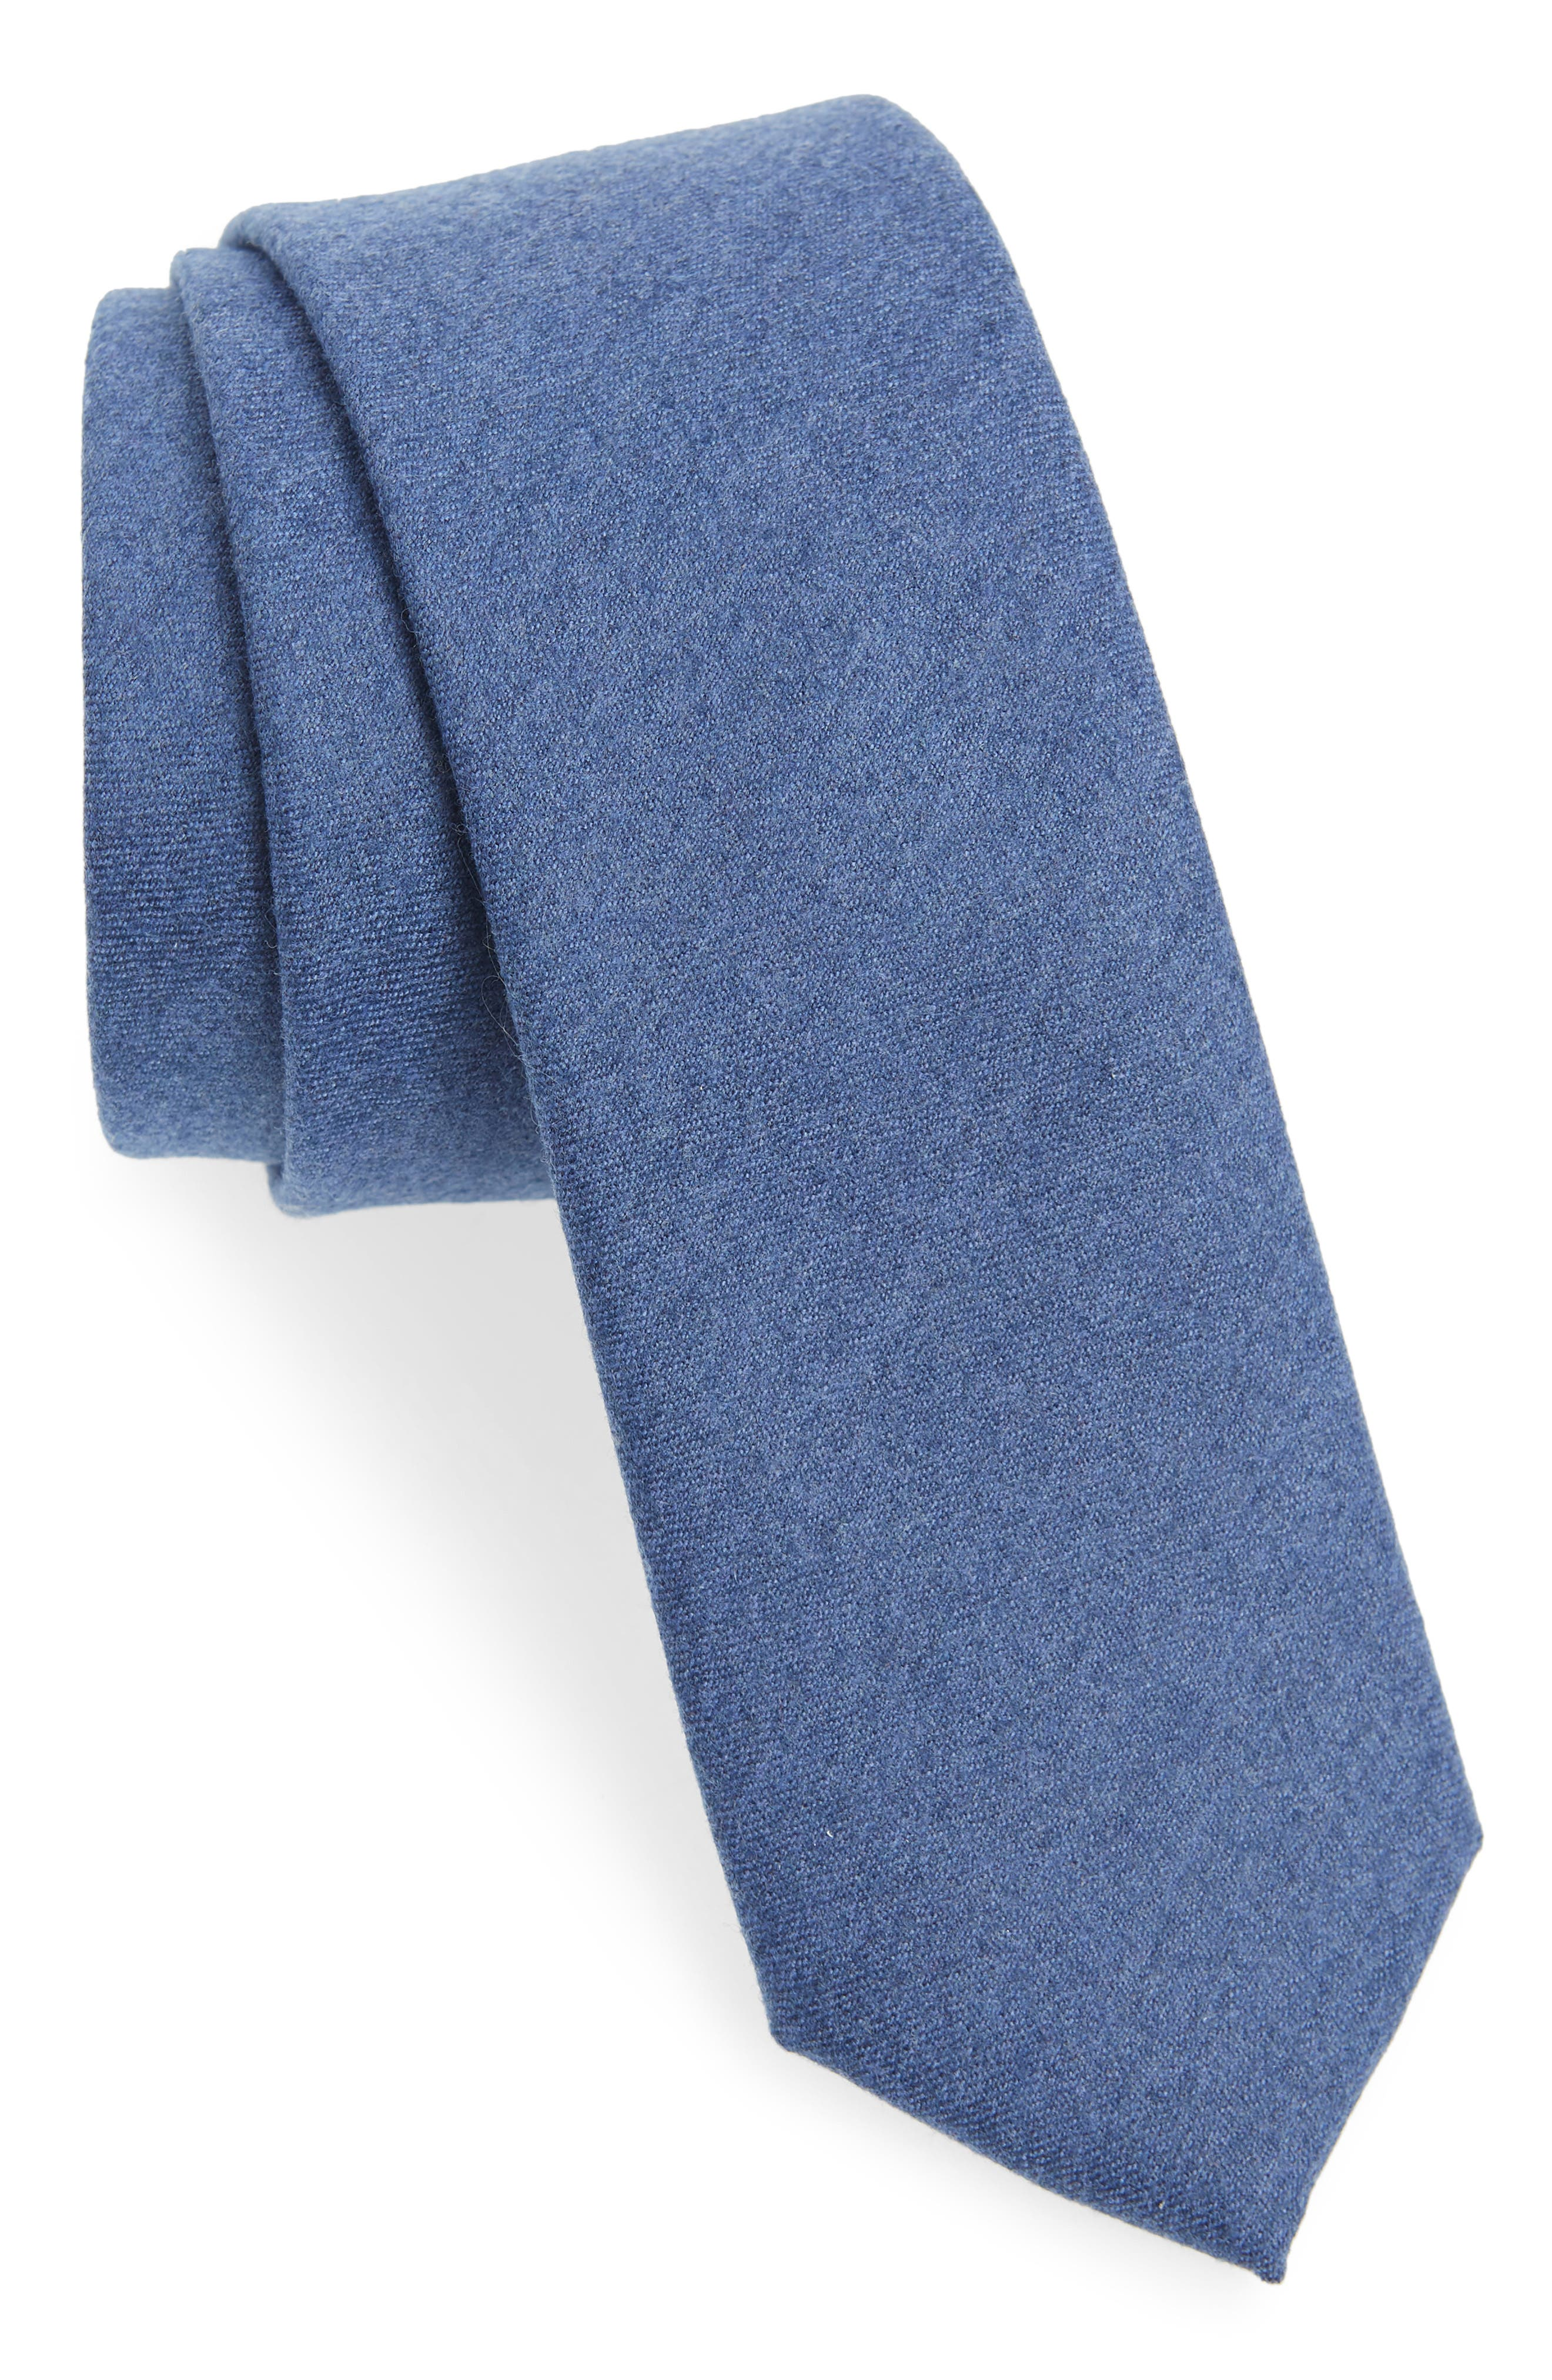 Togna Solid Wool Tie,                             Main thumbnail 1, color,                             BLUE